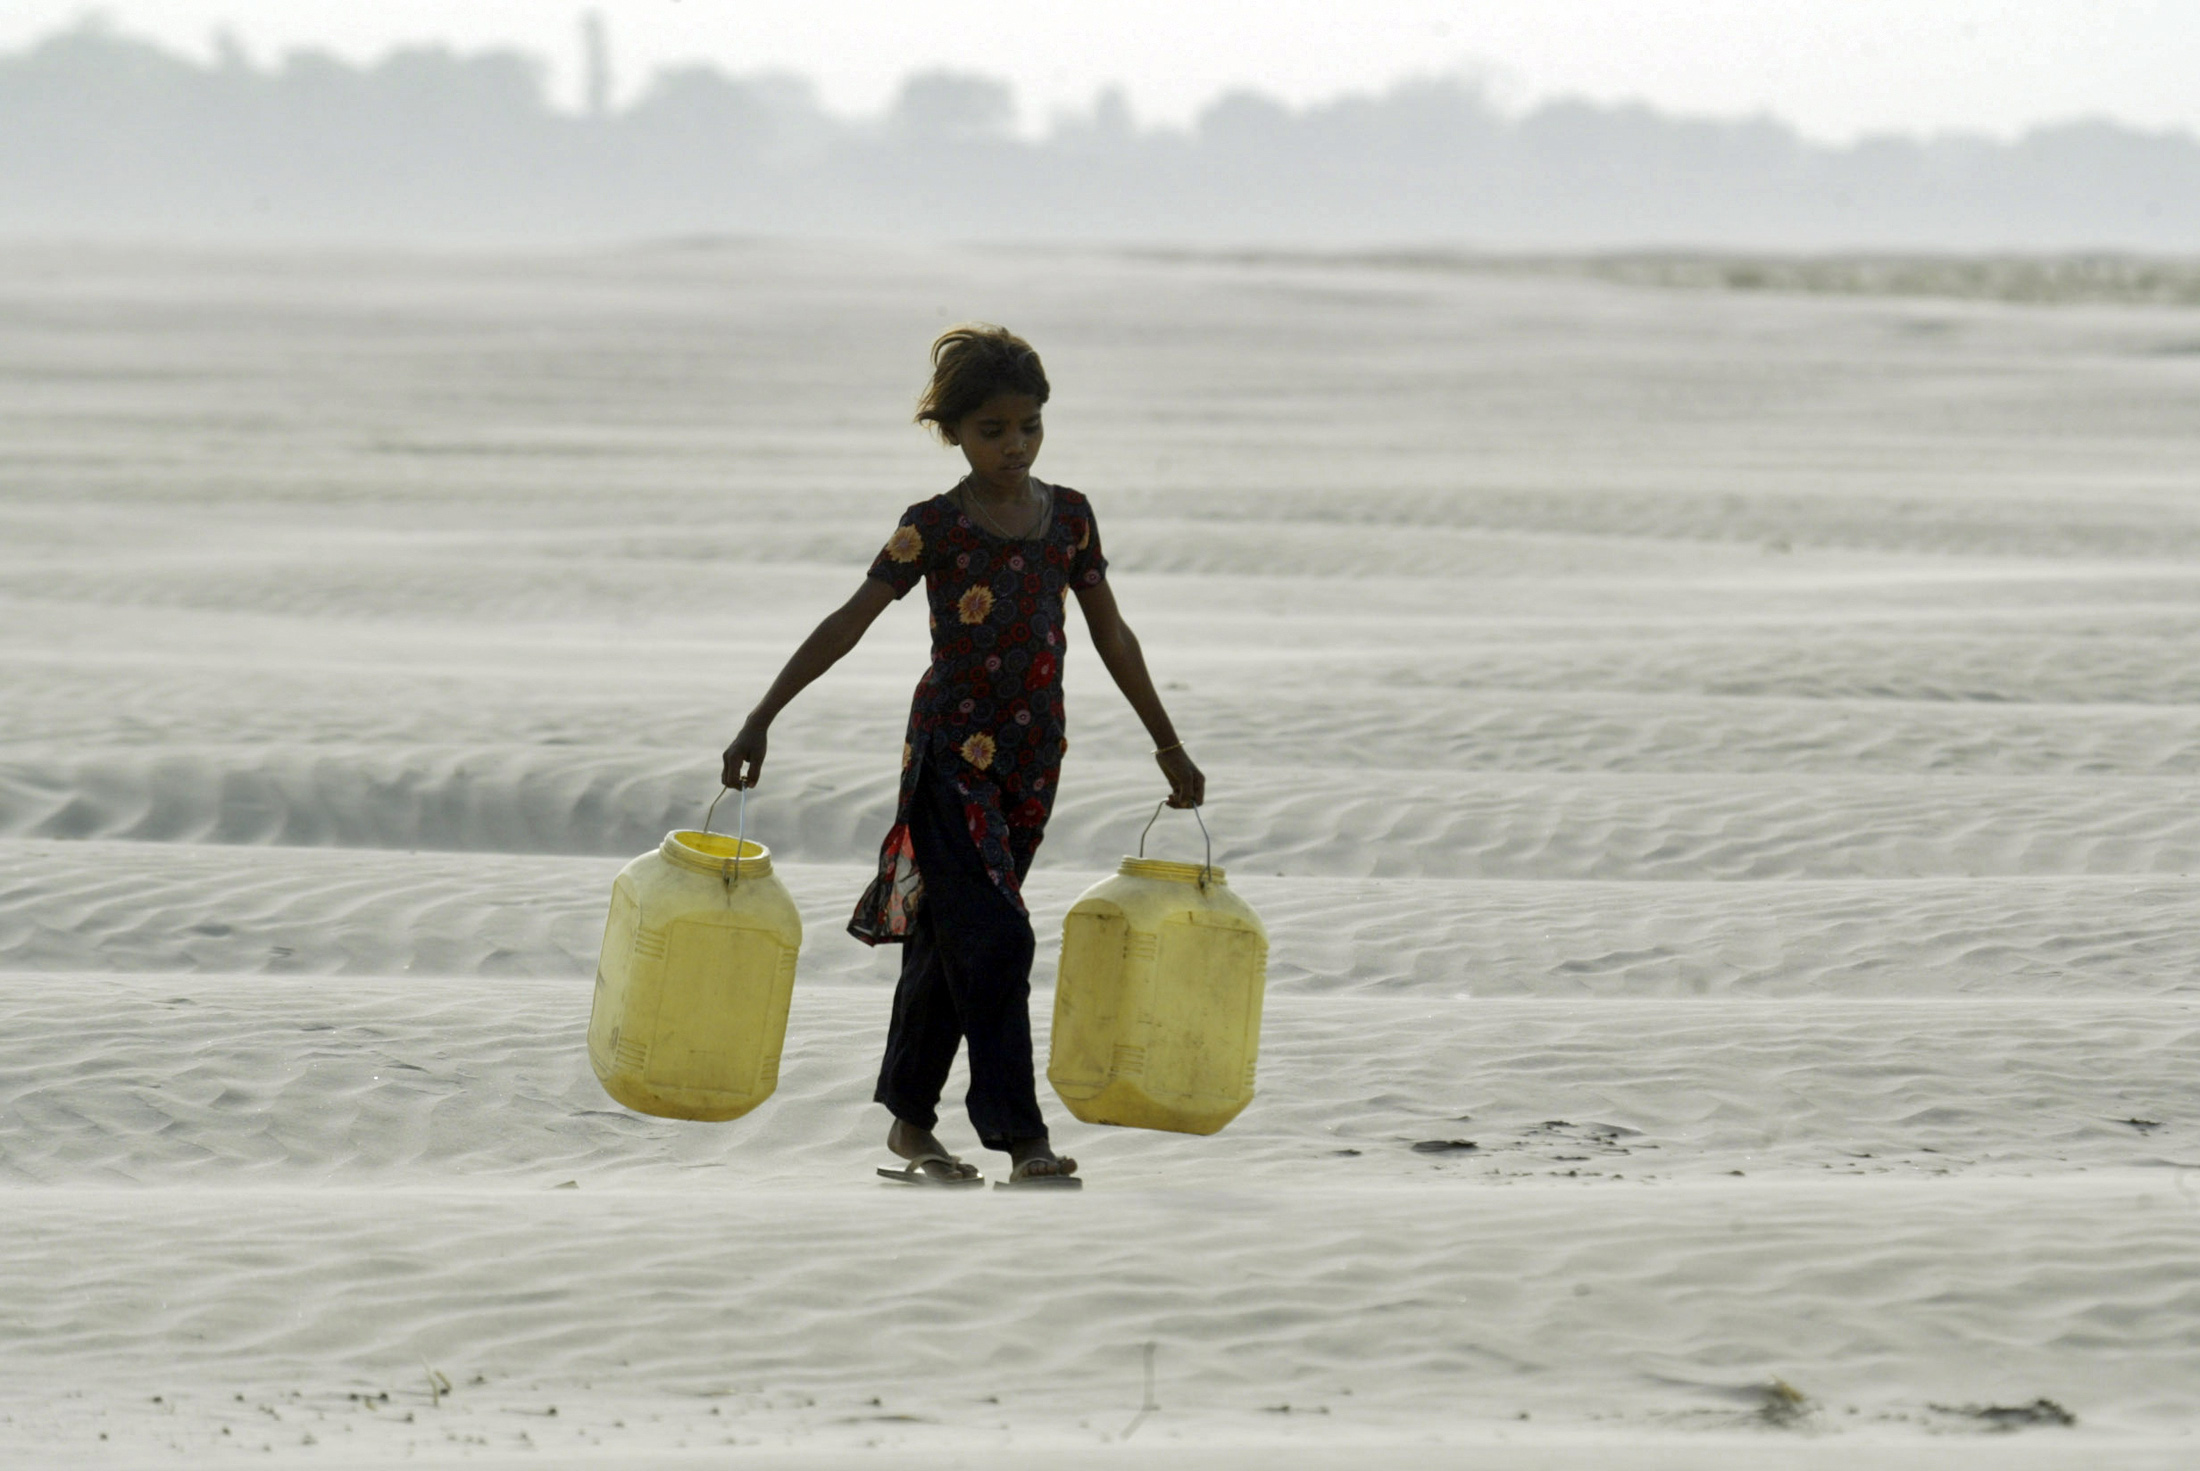 A village girl carries empty containers to collect drinking water near Chilla village in the Bundelkhand region of the northern Indian state of Uttar Pradesh. Image source: REUTERS/Pawan Kumar